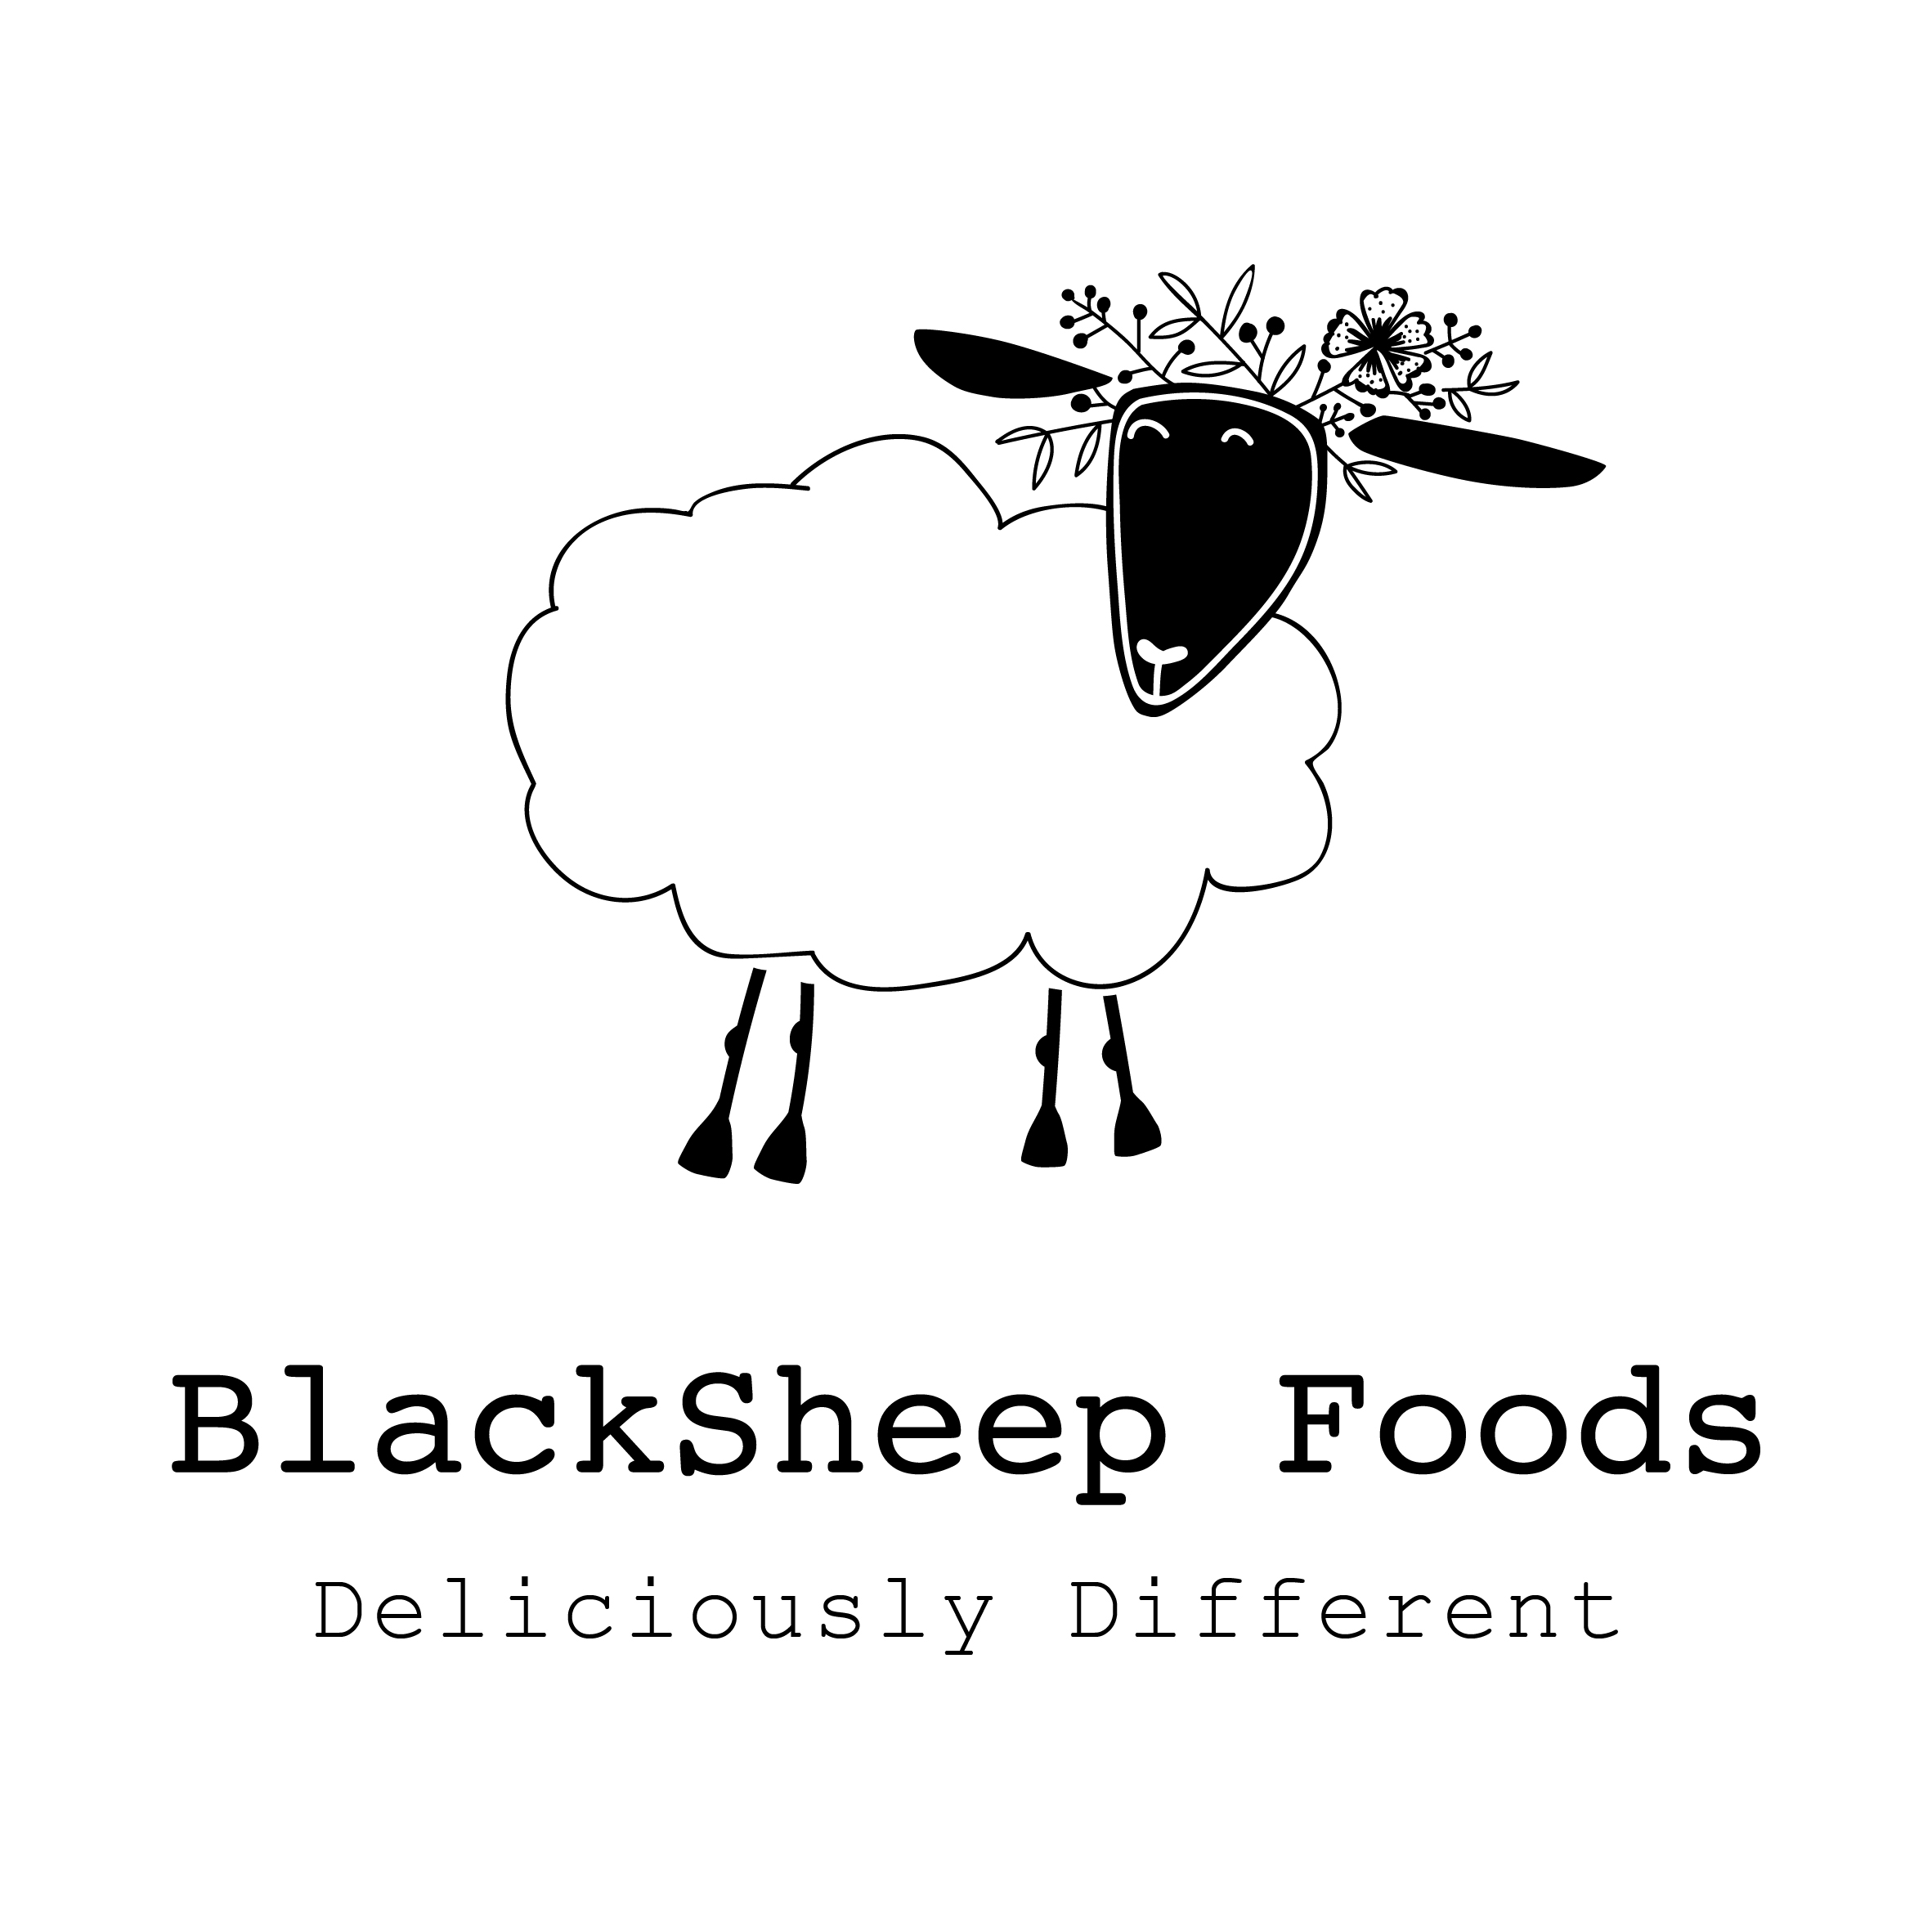 In love with our new logo designed by the extremely talented Nina Sefcik www.ninasefcik.com